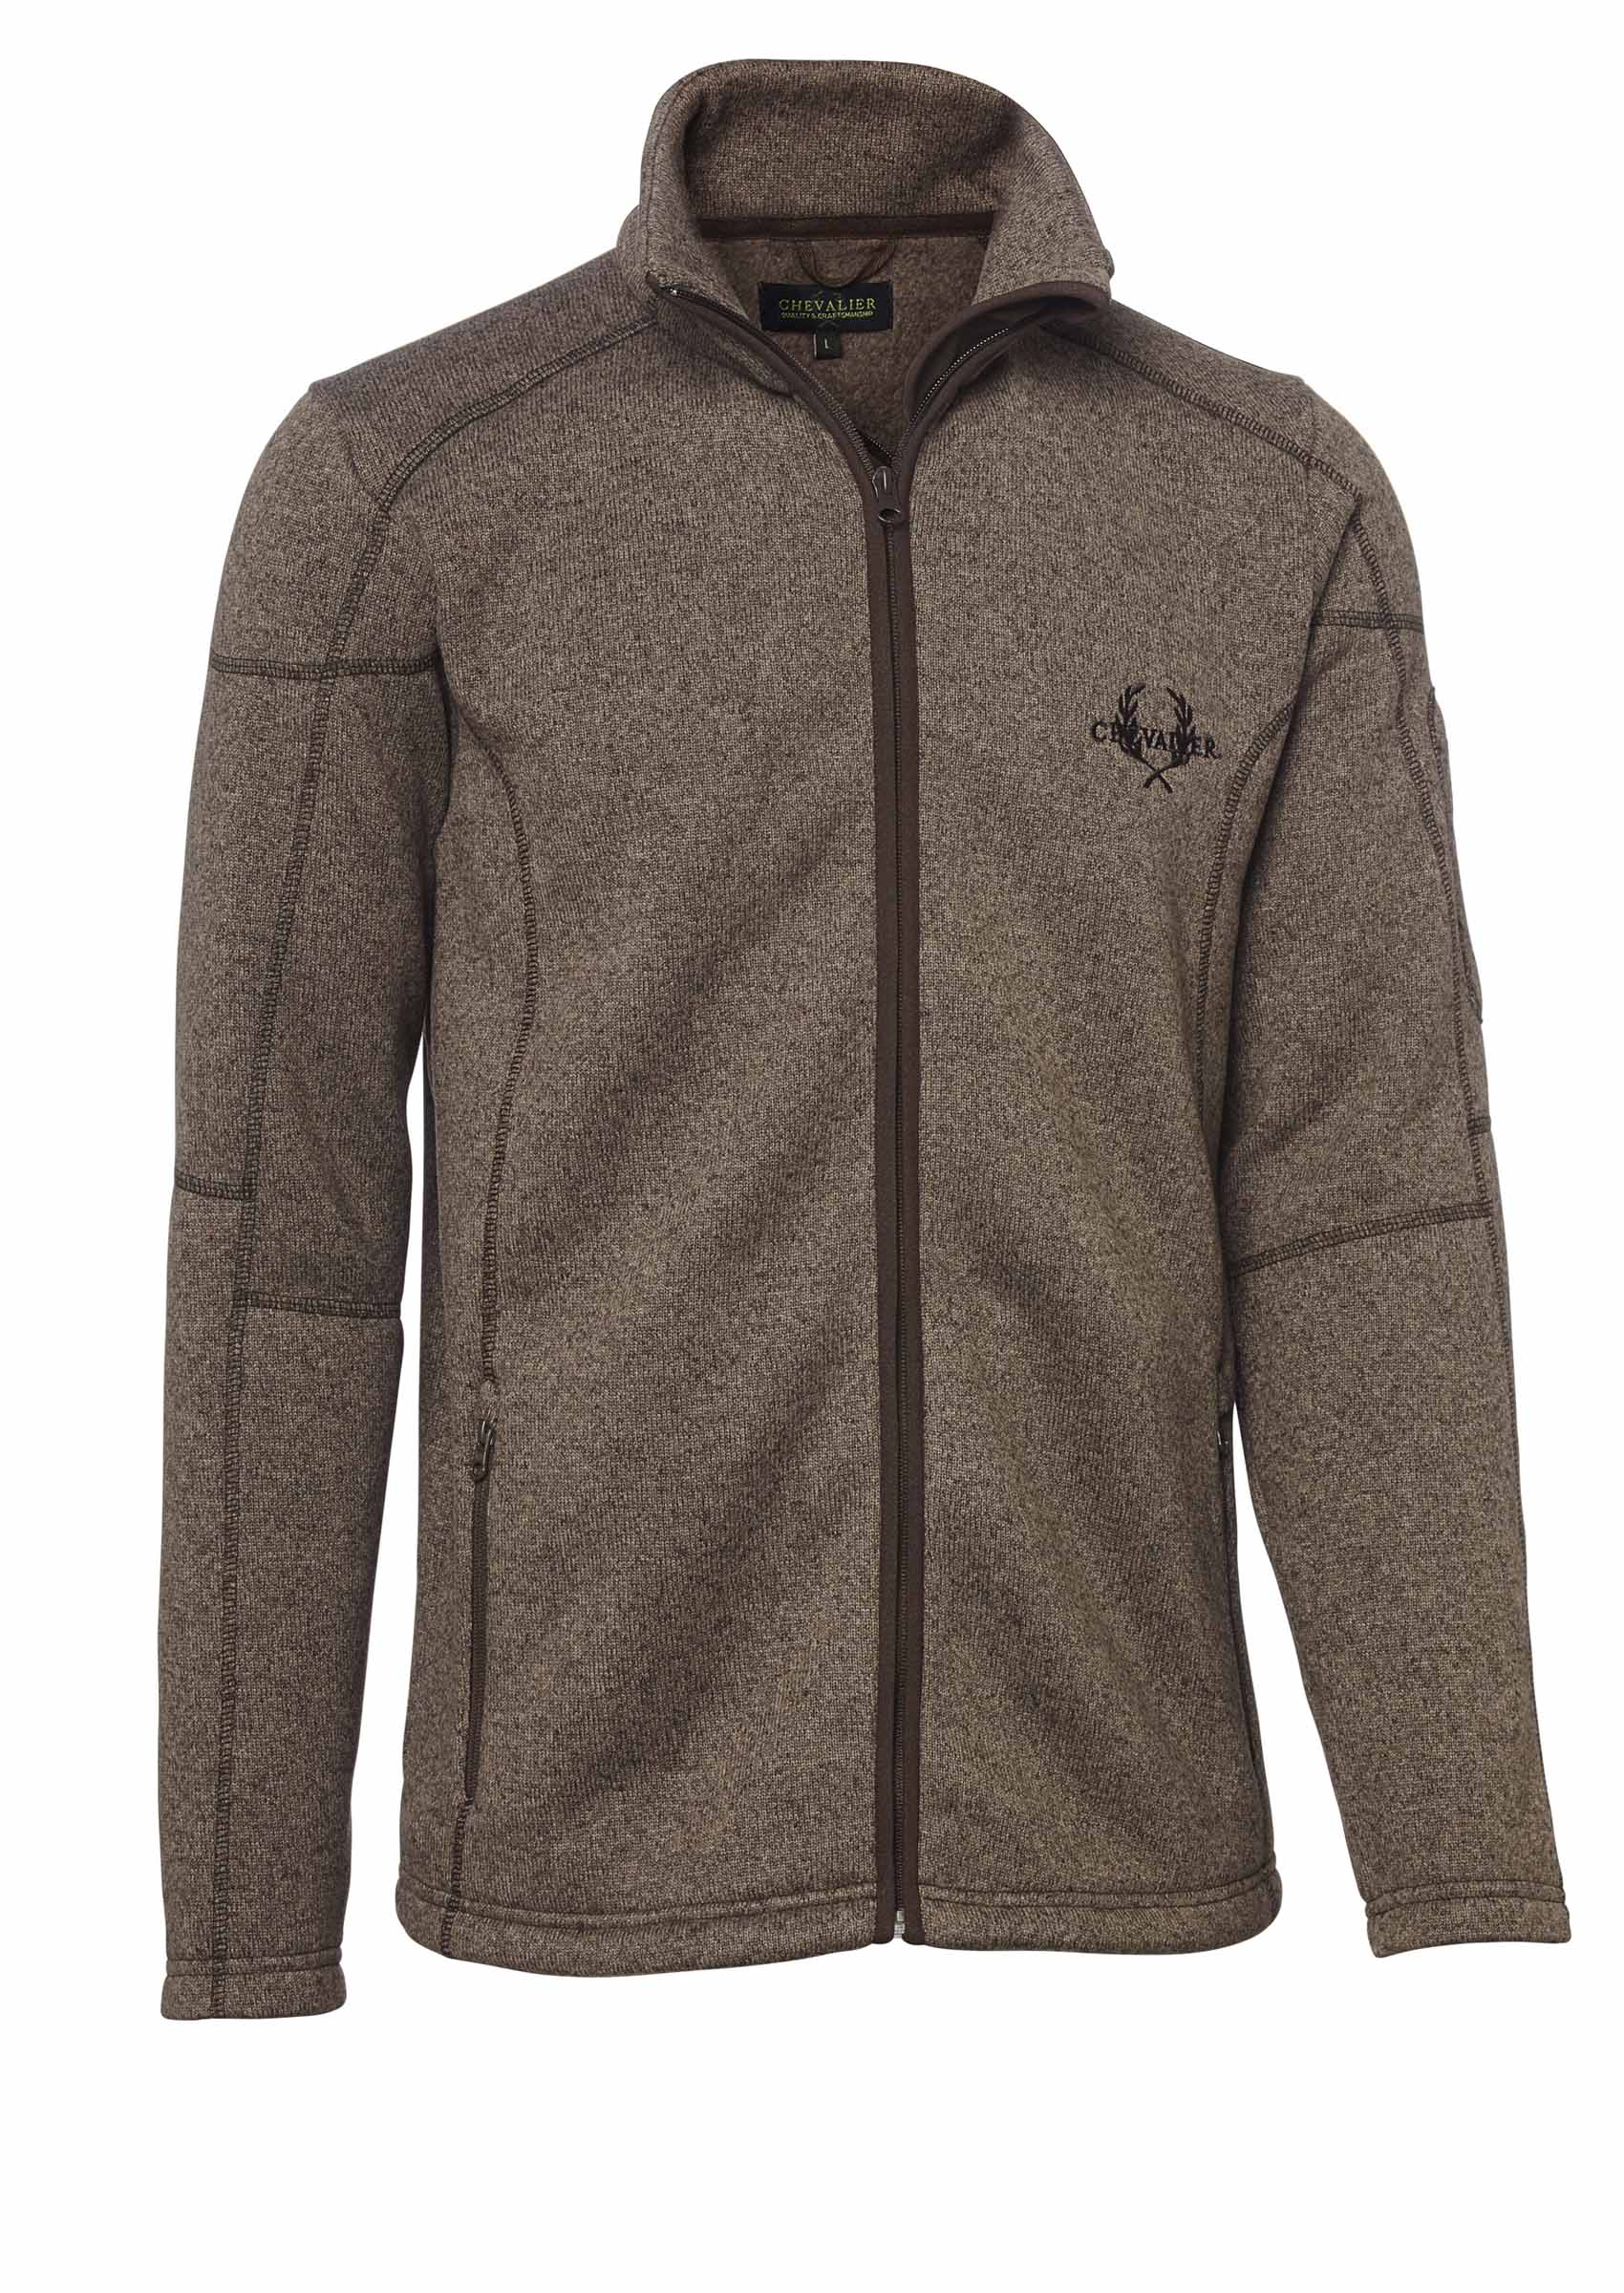 Tröja Chevalier Chester Fleece Cardigan